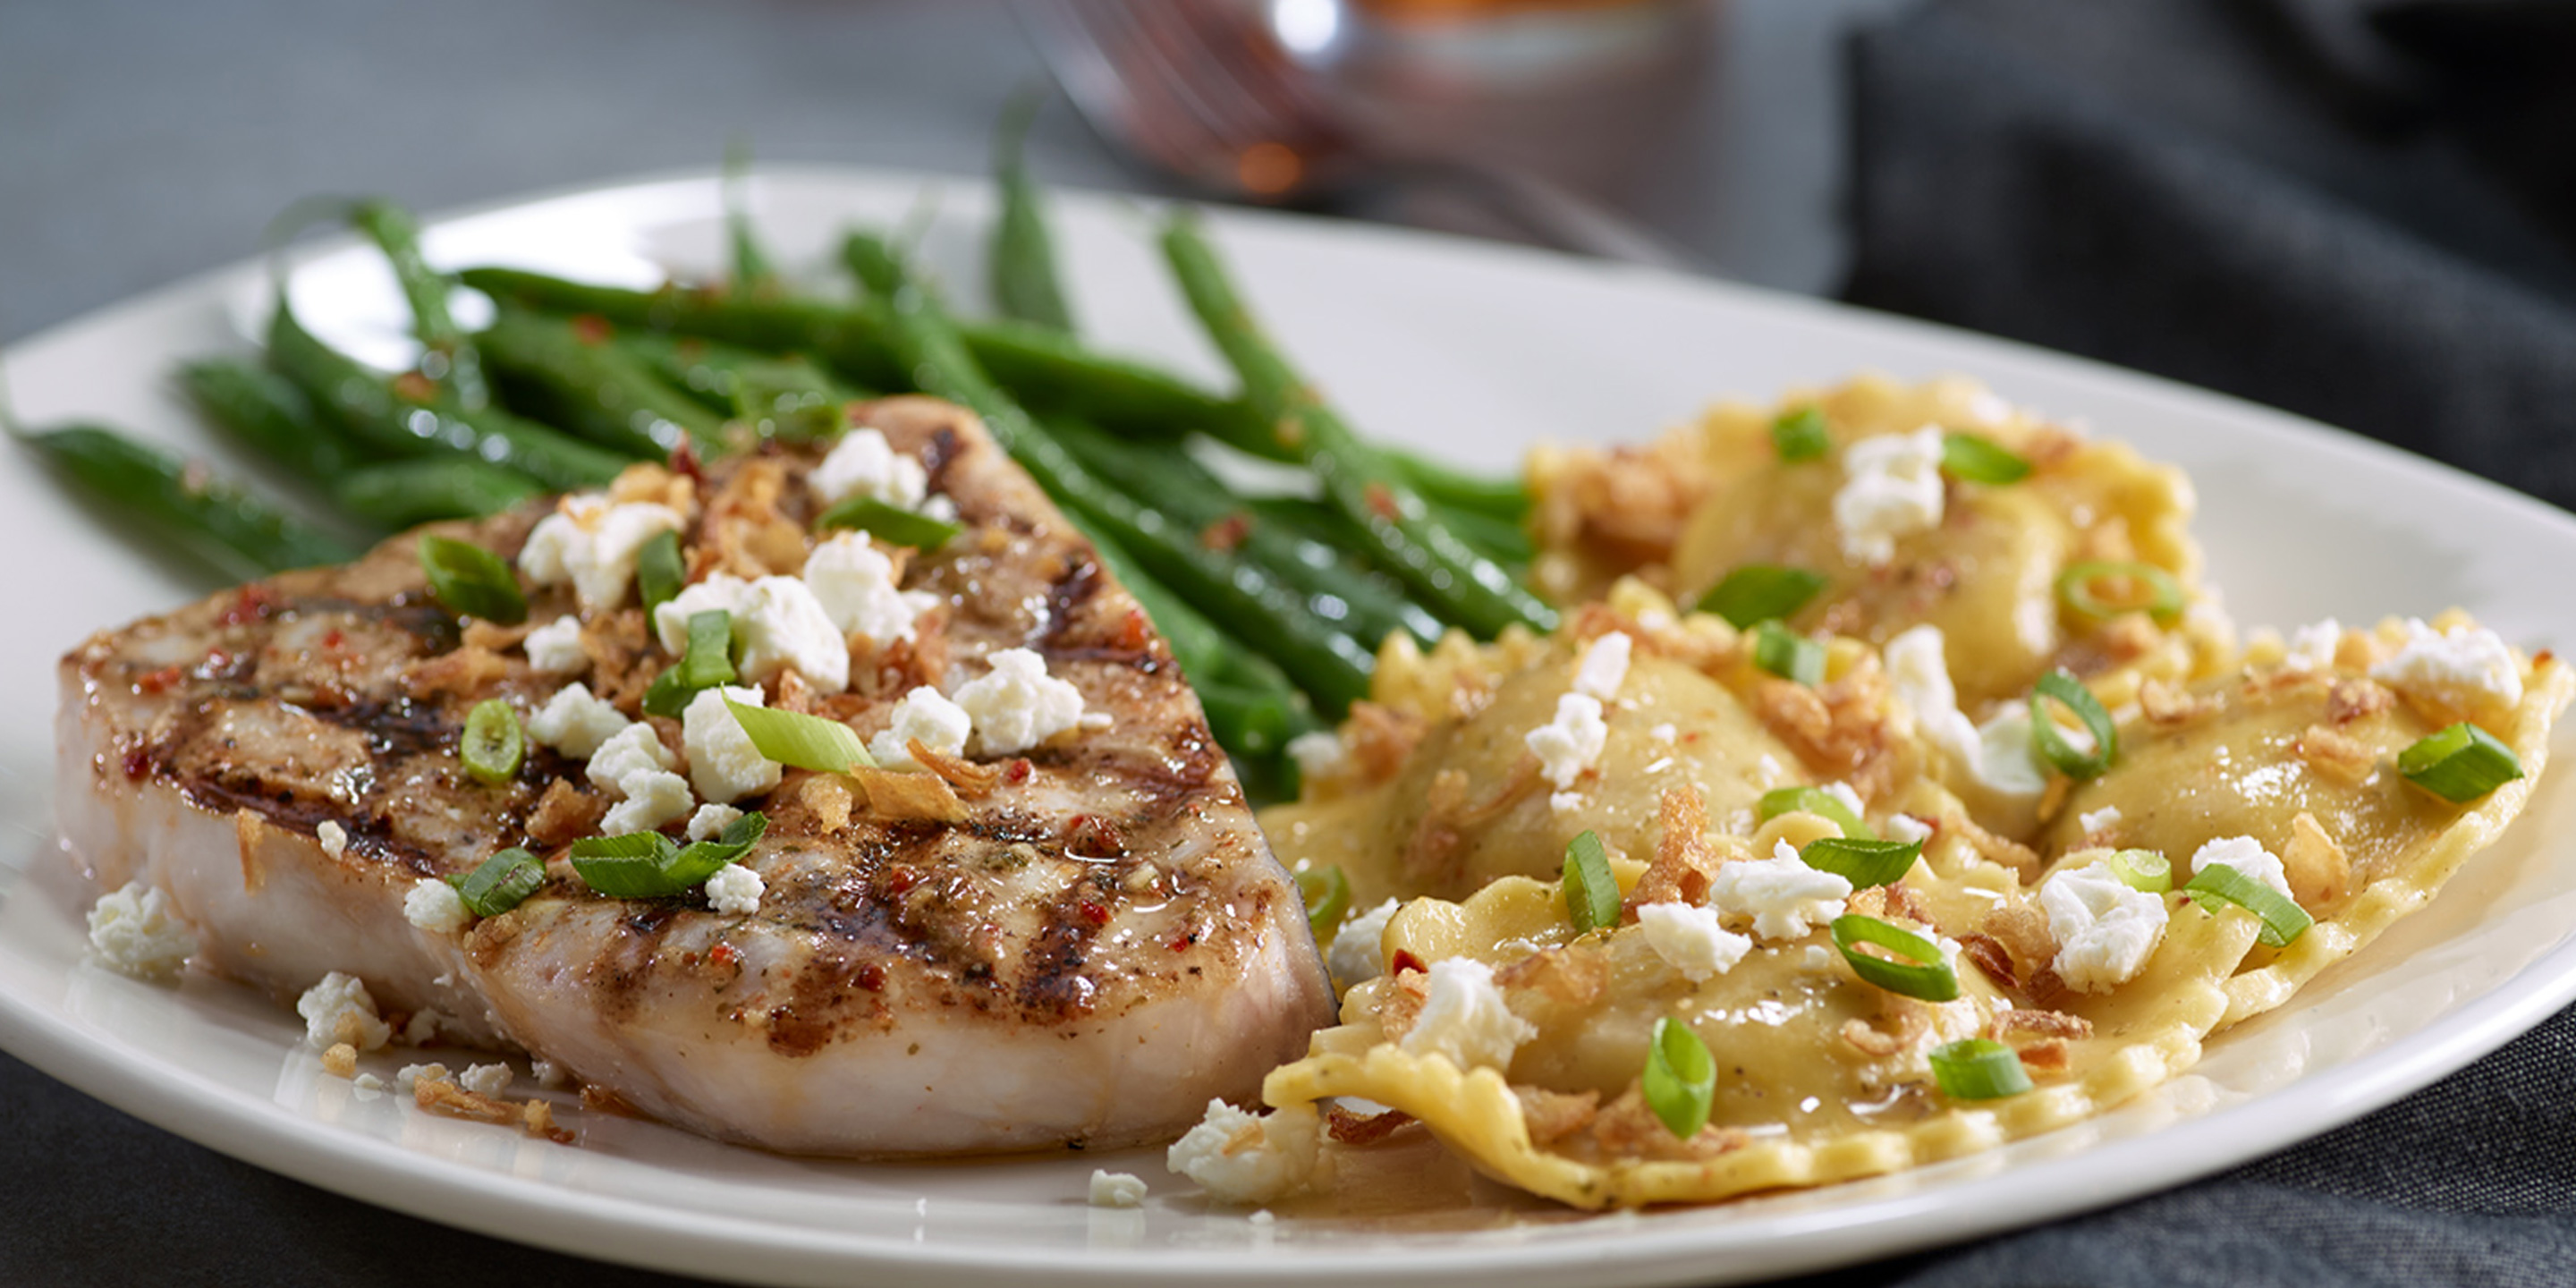 Dine and discover menu at bonefish grill discover finer for Bone fish and grill